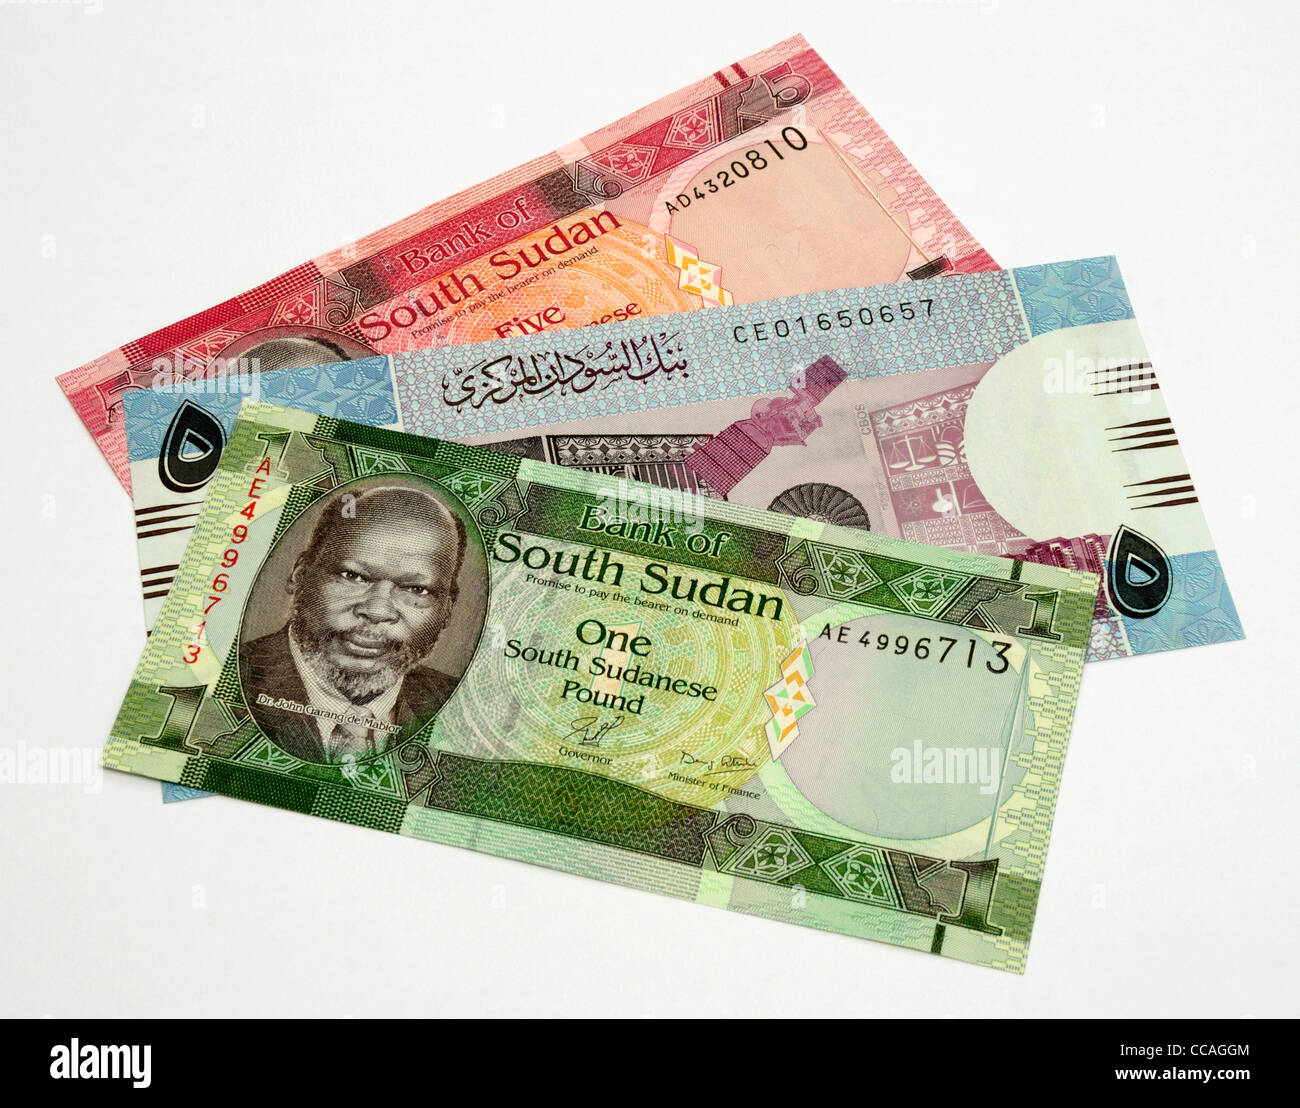 North and South Sudan Currency. - Stock Image